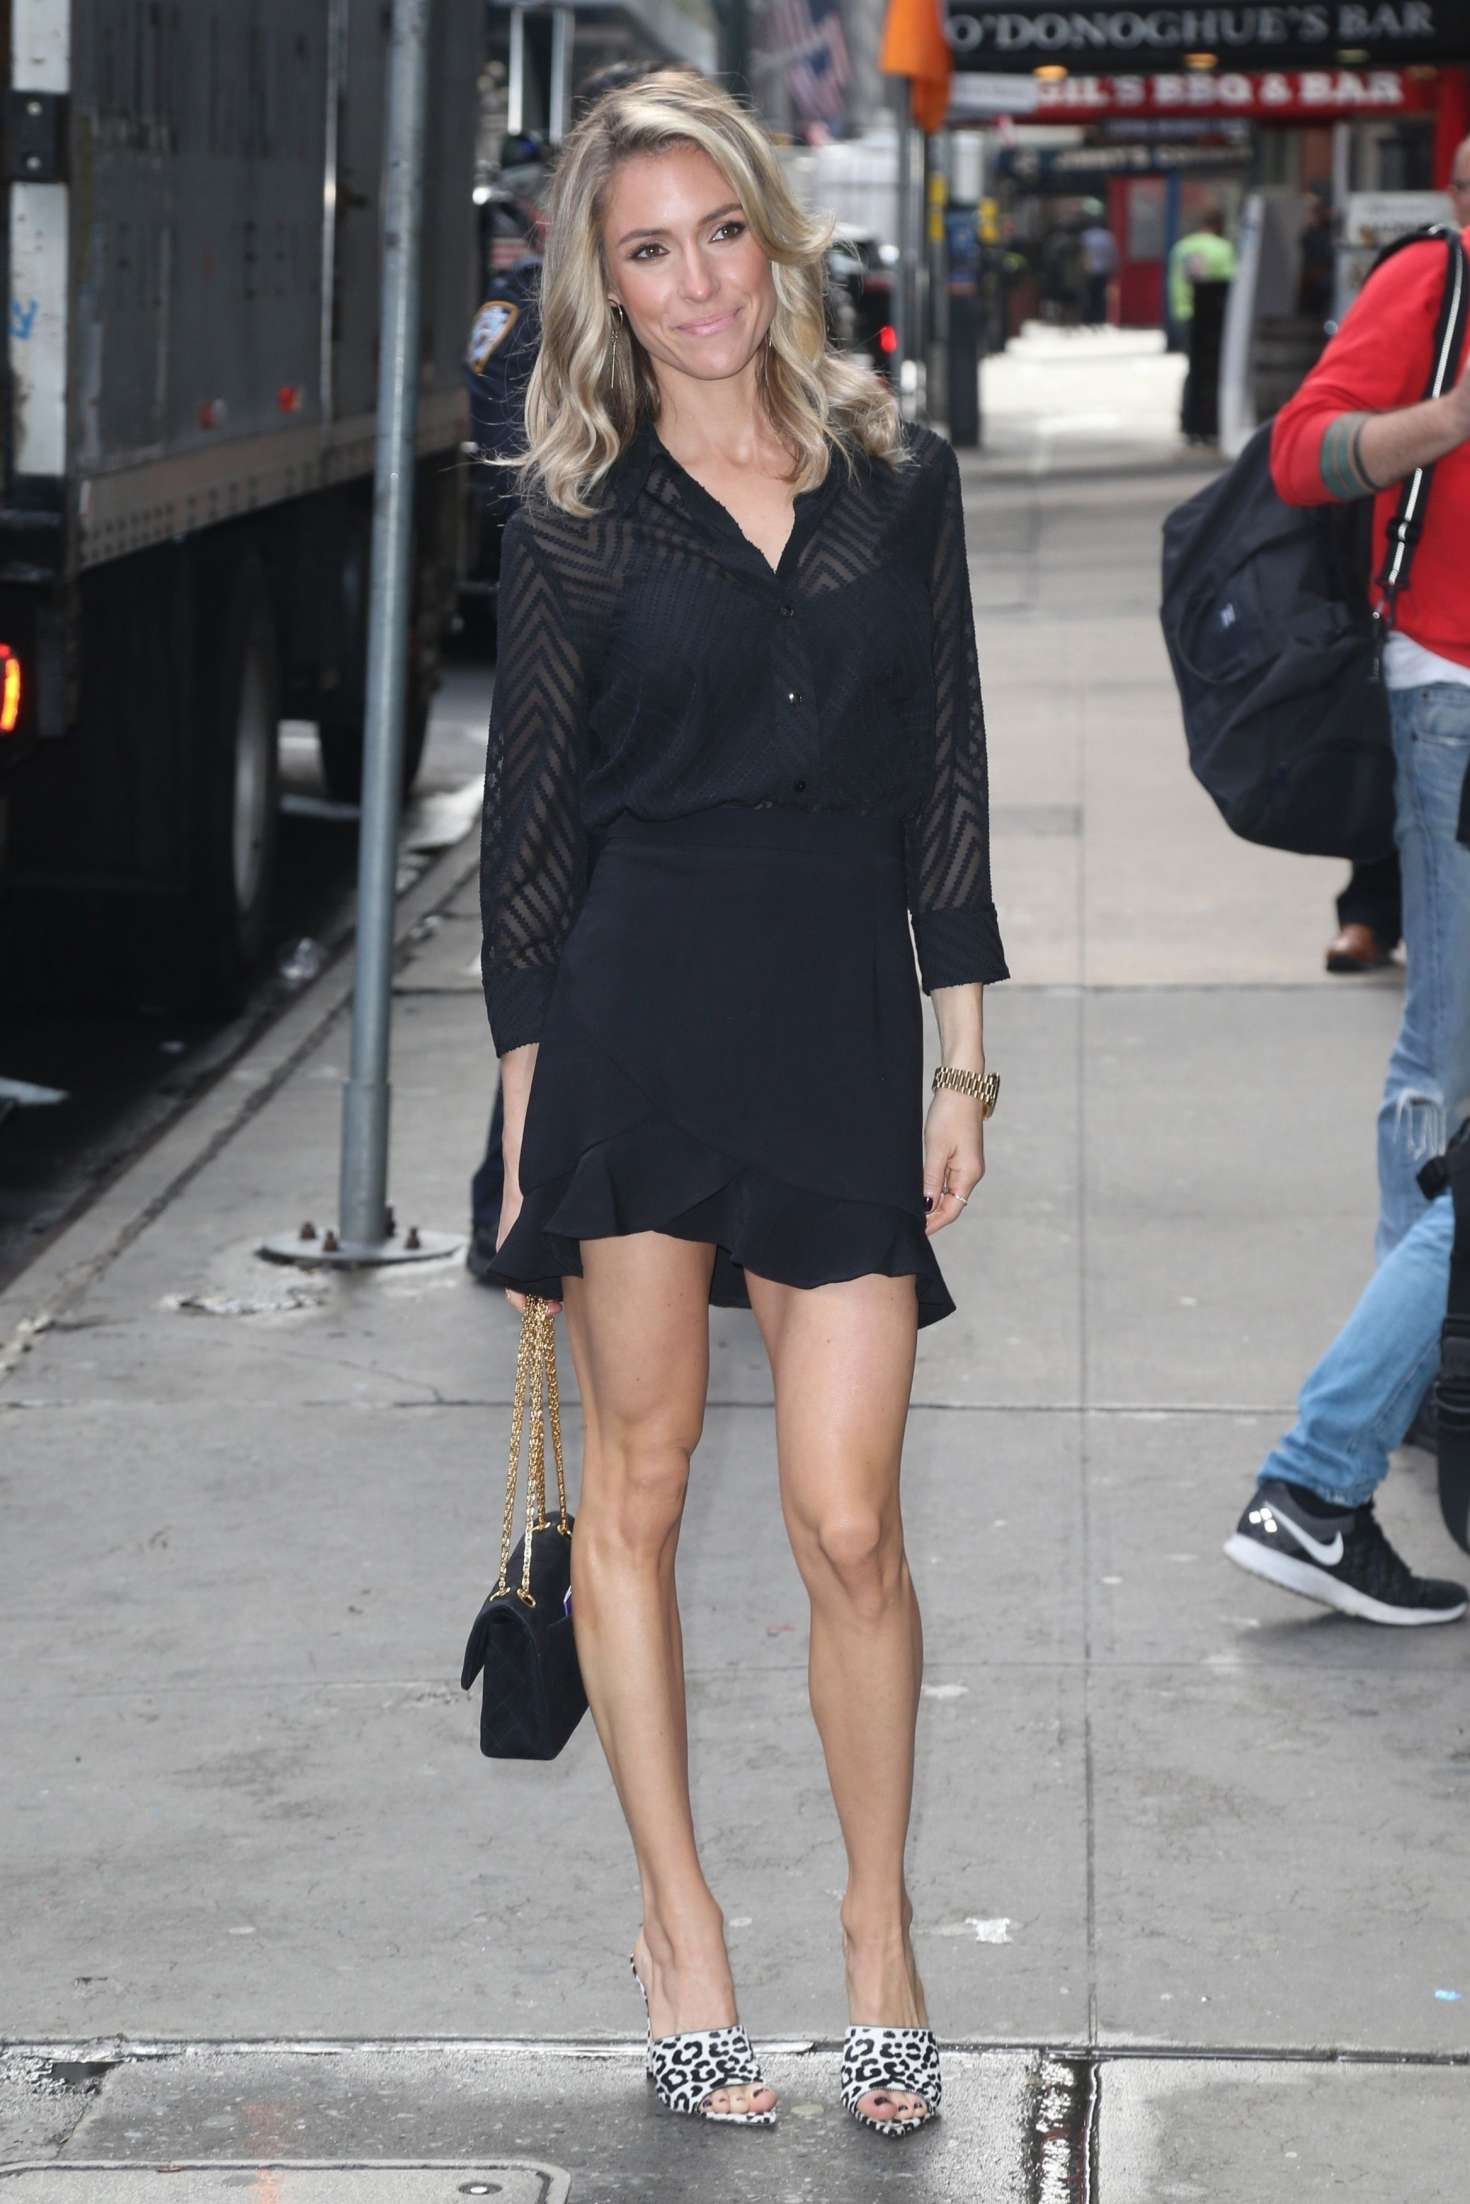 Kristin Cavallari 2019 : Kristin Cavallari: Heads to Good Morning America -10